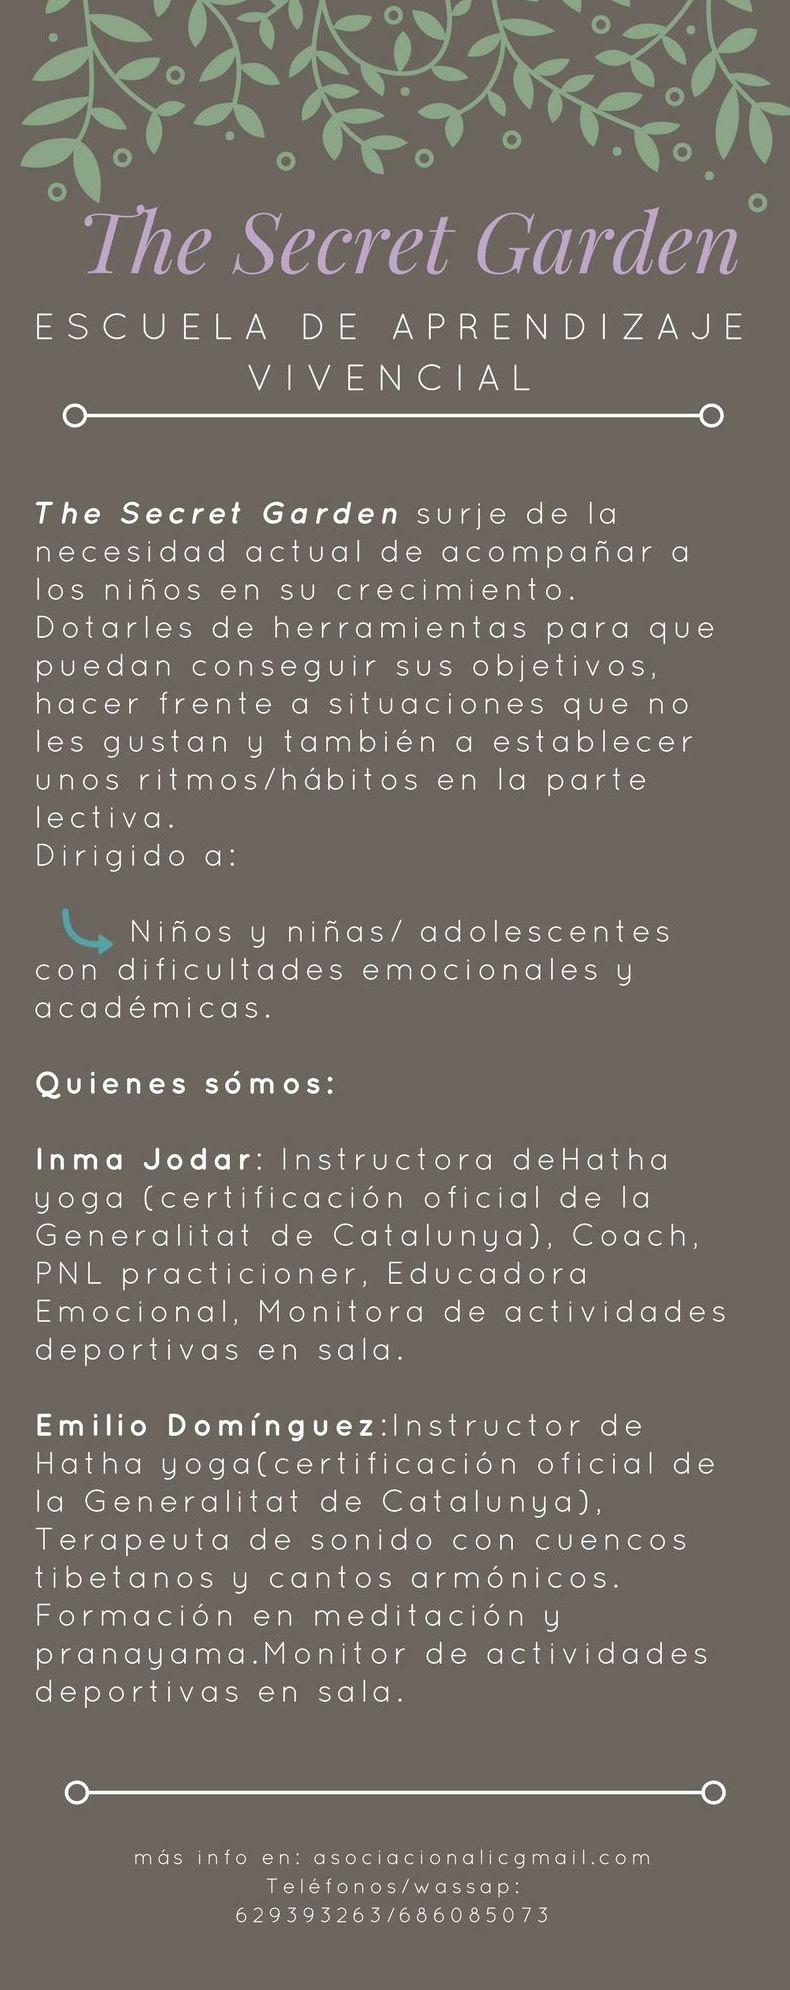 The Secret Garden: Servicios de Inma Coach